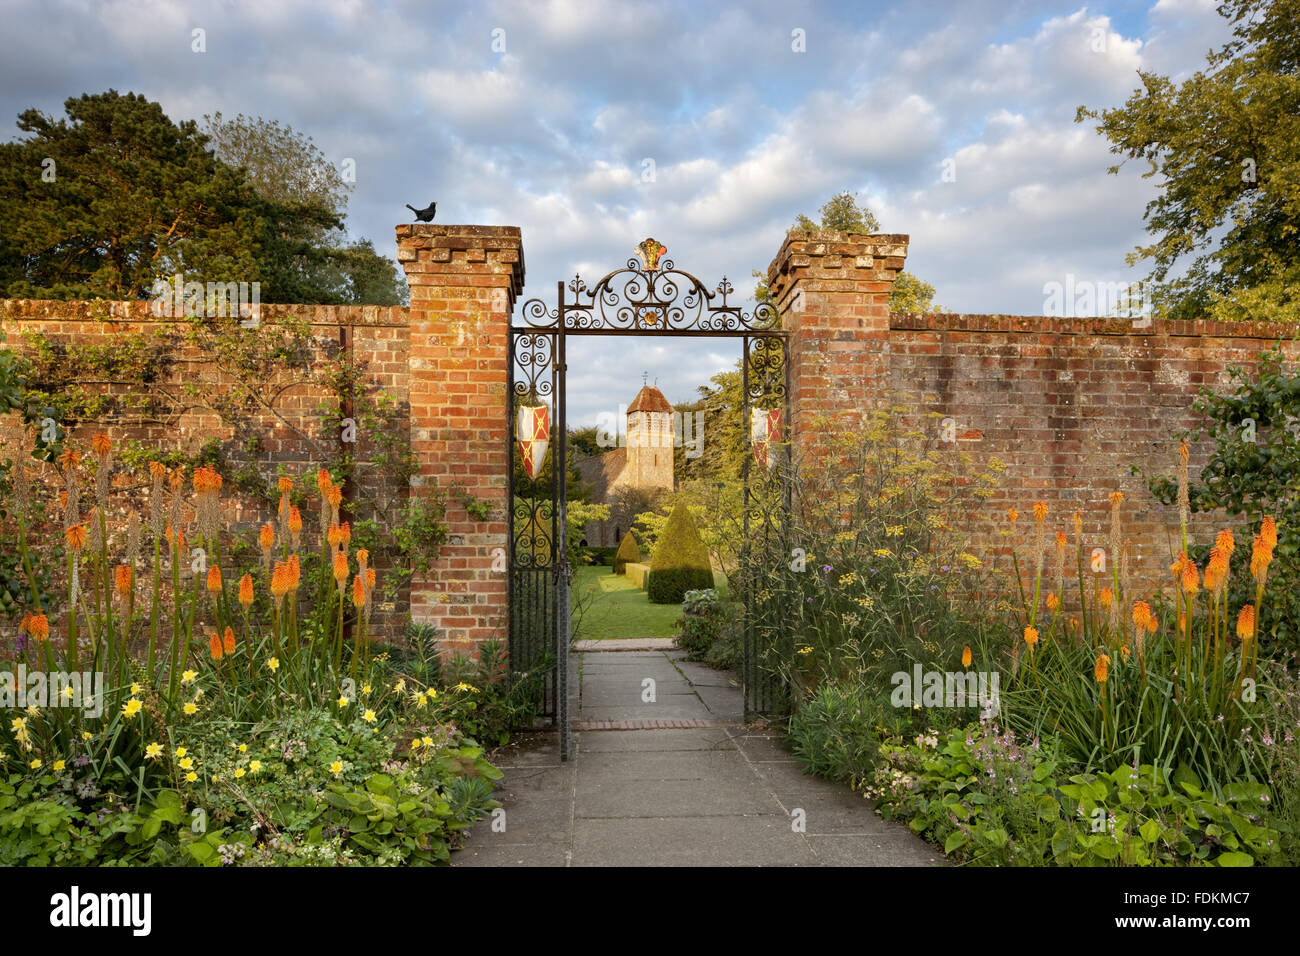 All Saints church (Not National Trust) viewed from the Walled Garden at Hinton Ampner, Hampshire. - Stock Image